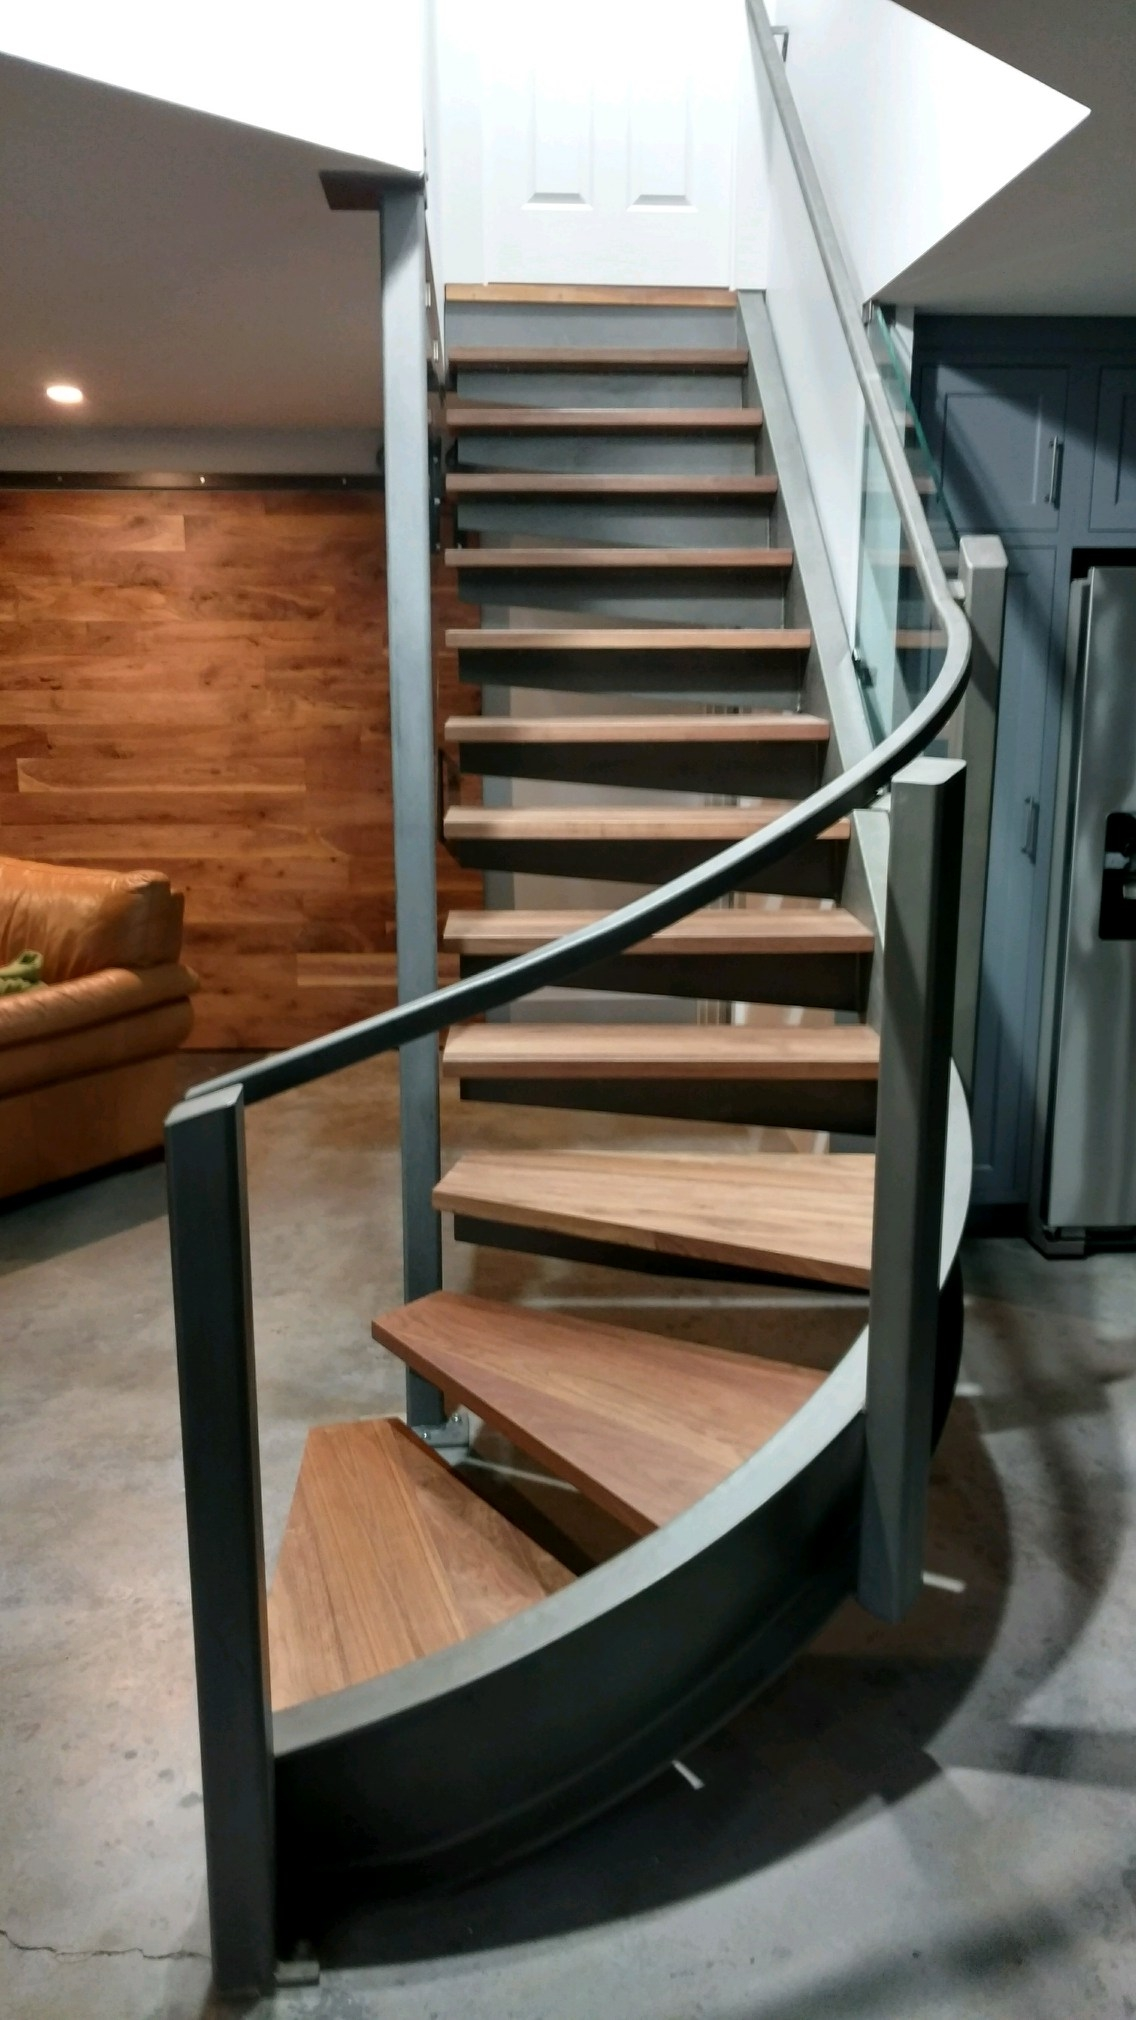 Spiral Staircase — Steel Weld Inc | Spiral Staircase 2 Floors | 8 Ft | Interesting | Spiral Shaped | Outdoor | Wooden